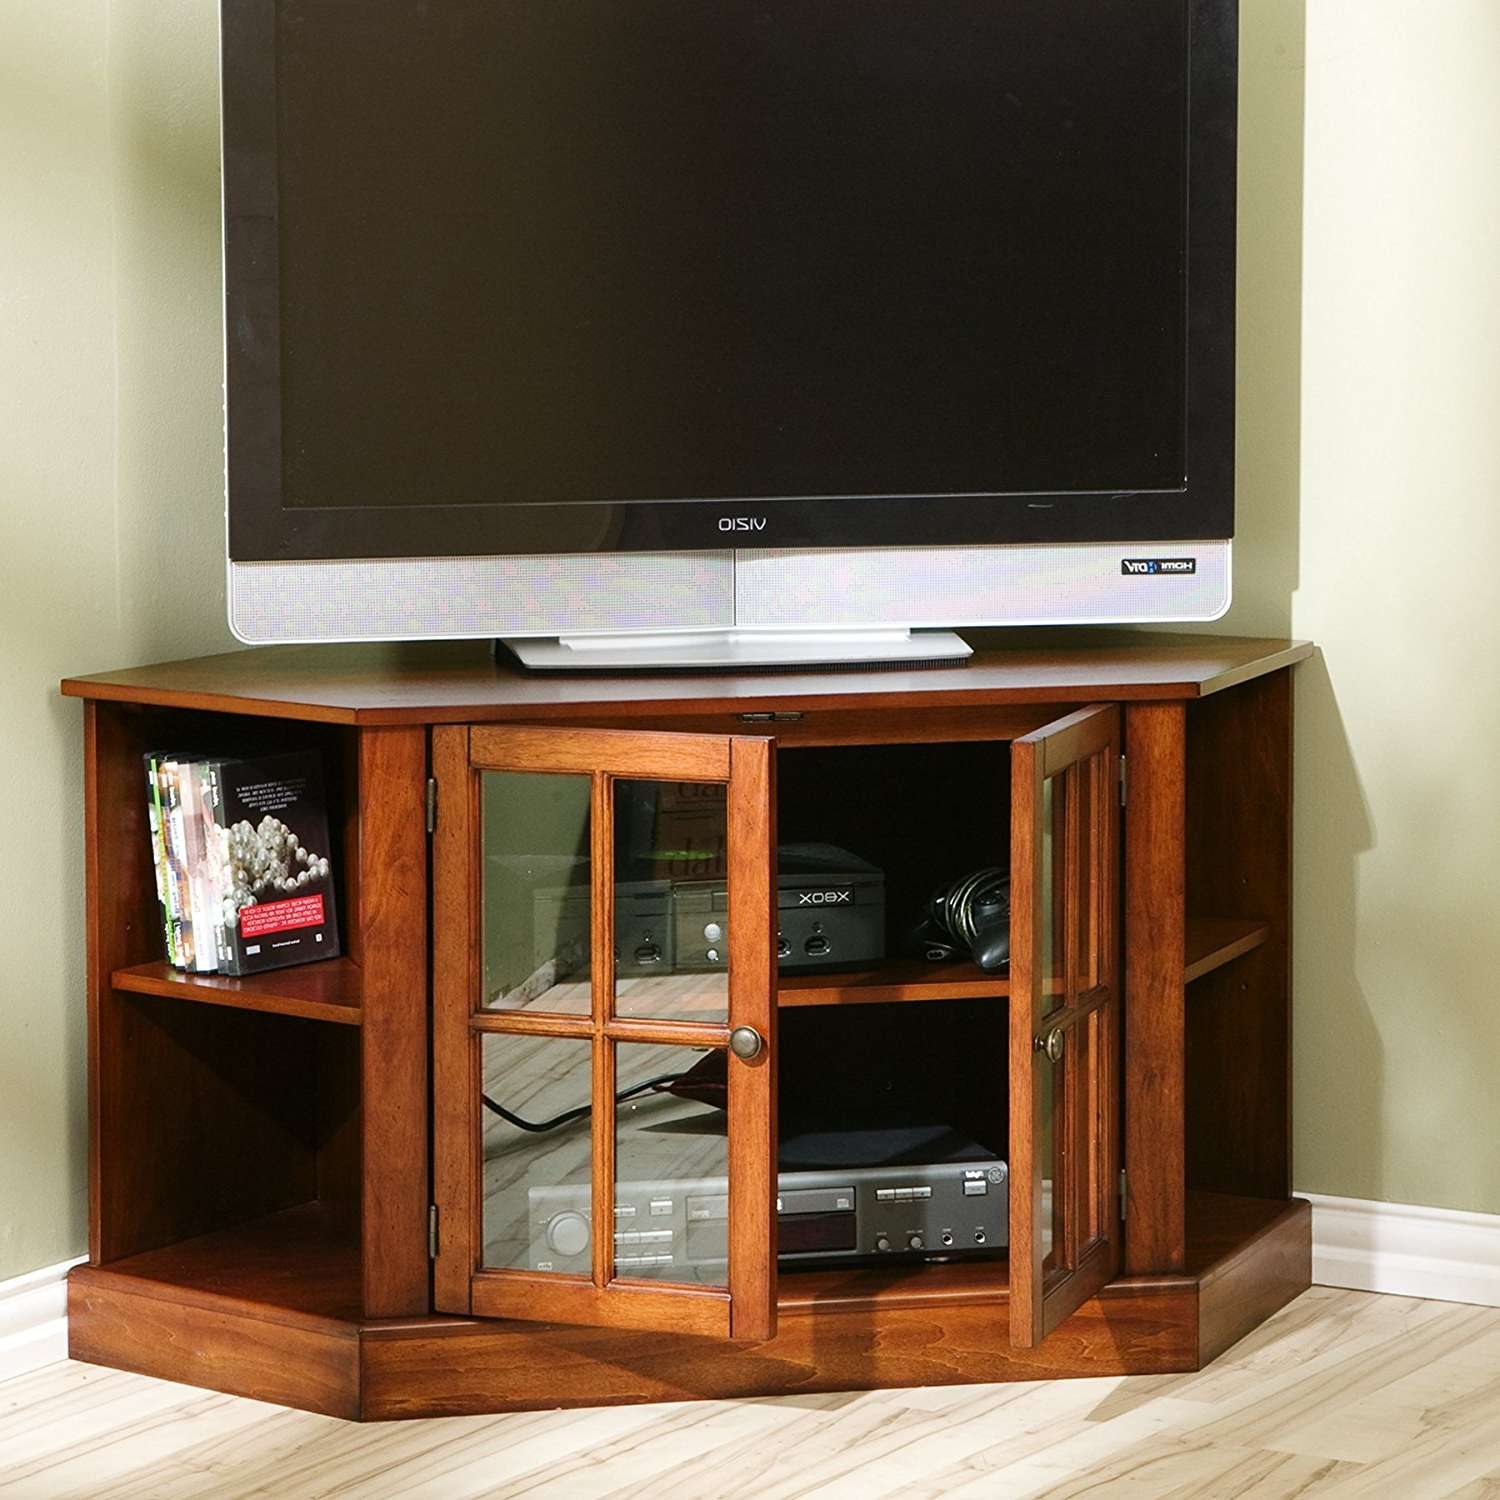 Tv : 24 Inch Corner Tv Stands Amusing 24 Inch Corner Tv Stands Within 24 Inch Tv Stands (View 7 of 15)